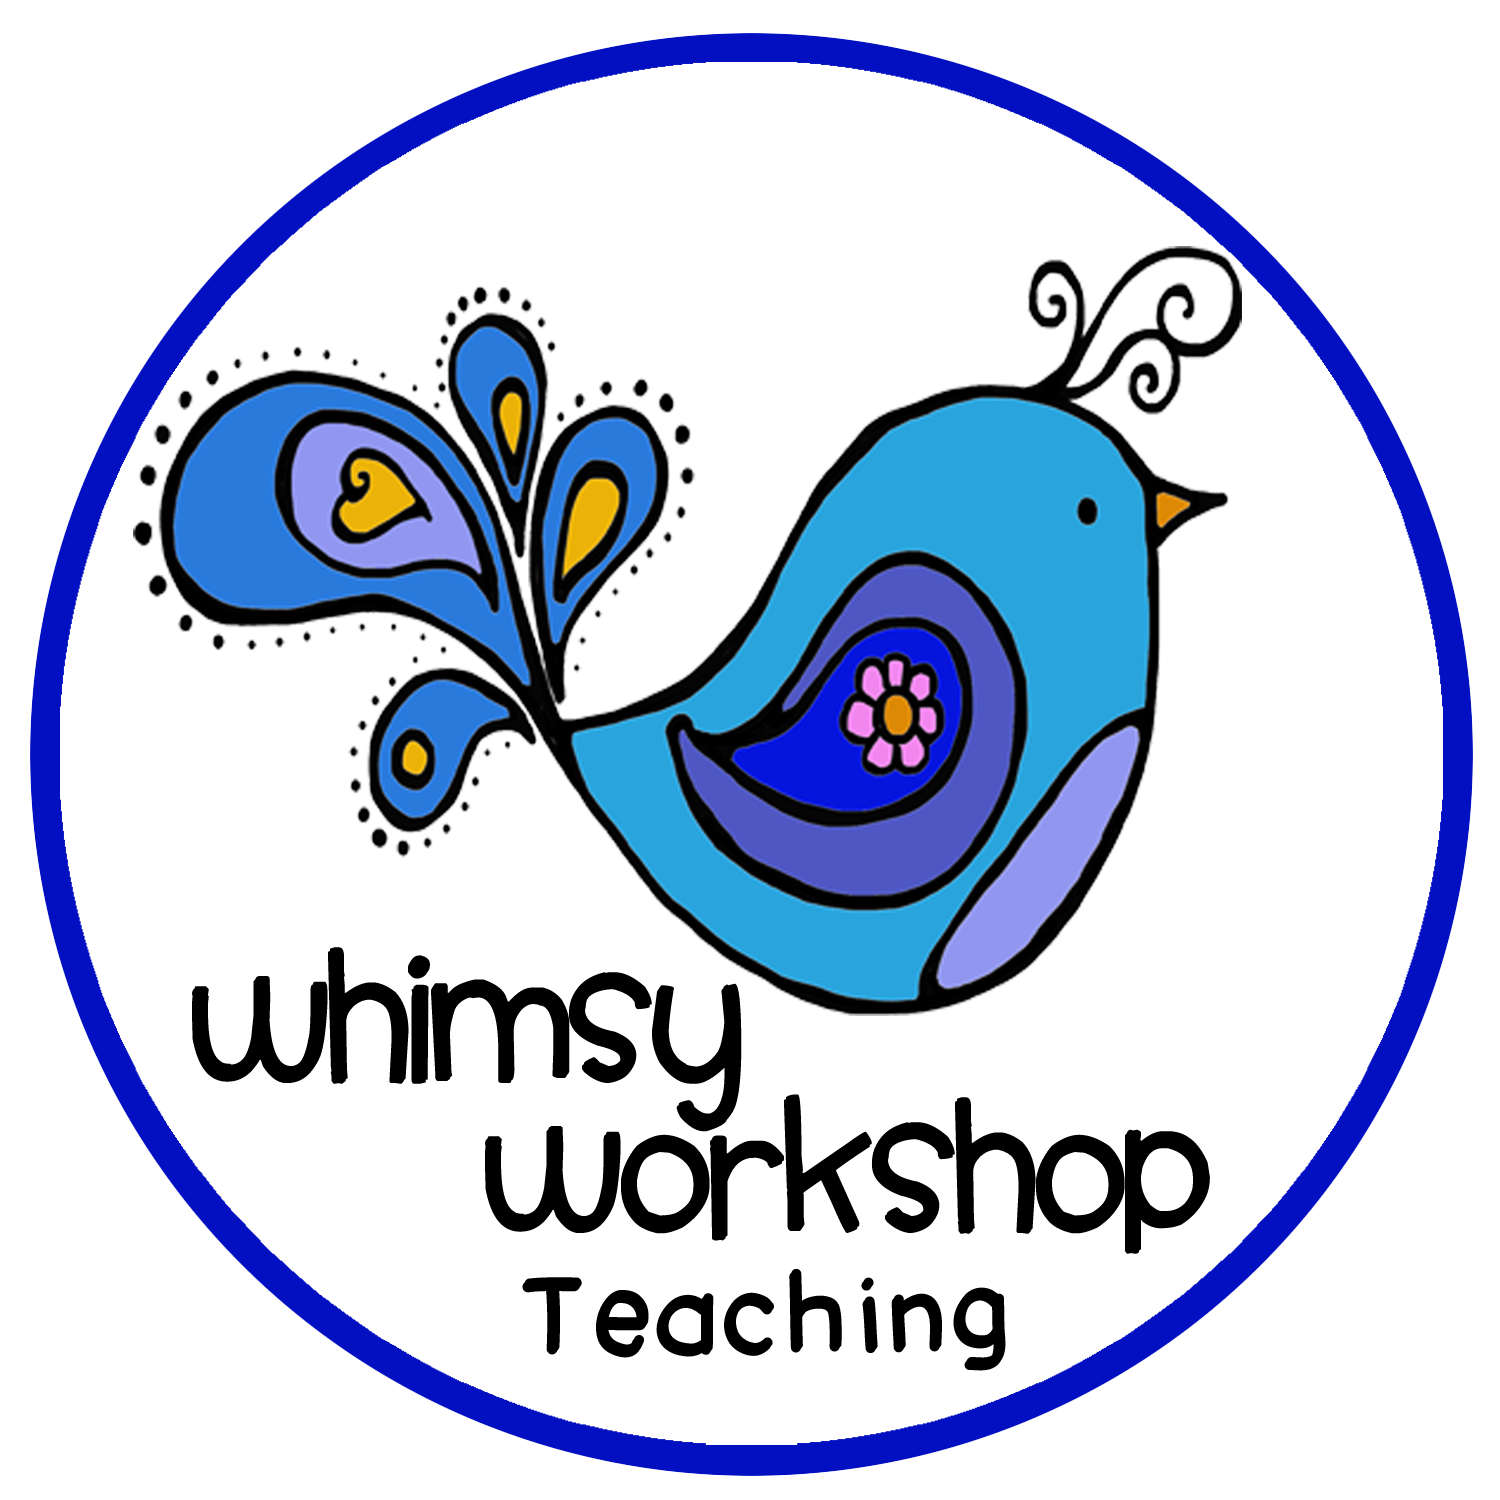 http://whimsyworkshop.blogspot.com/